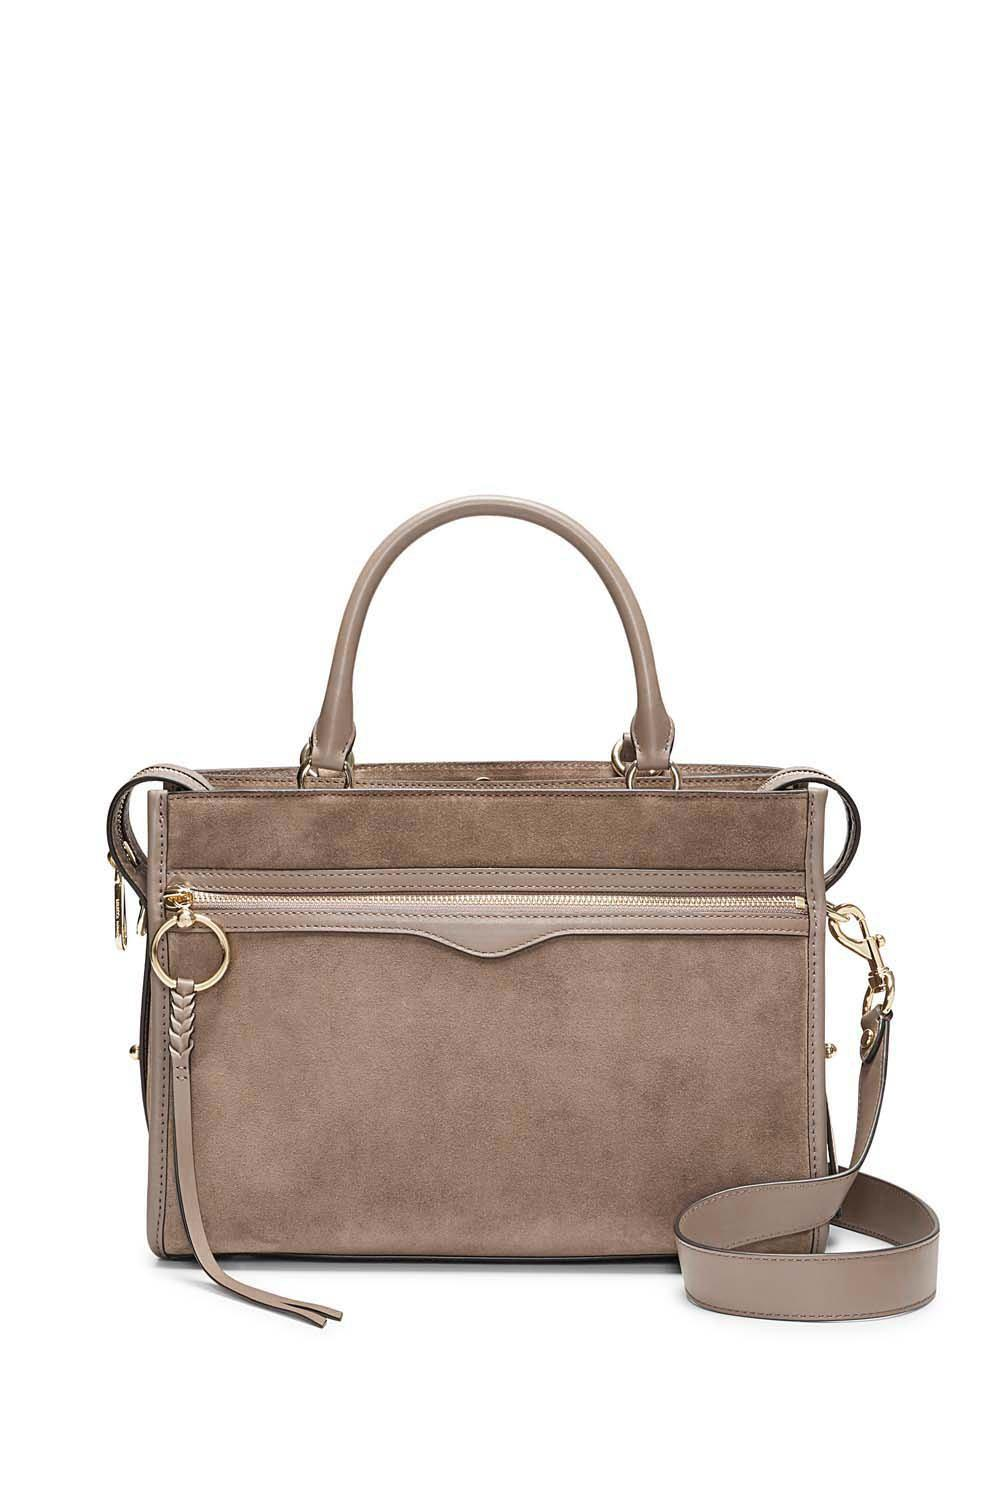 55c5b5f4d2e Rebecca Minkoff Bedford Zip Satchel in Brown - Lyst